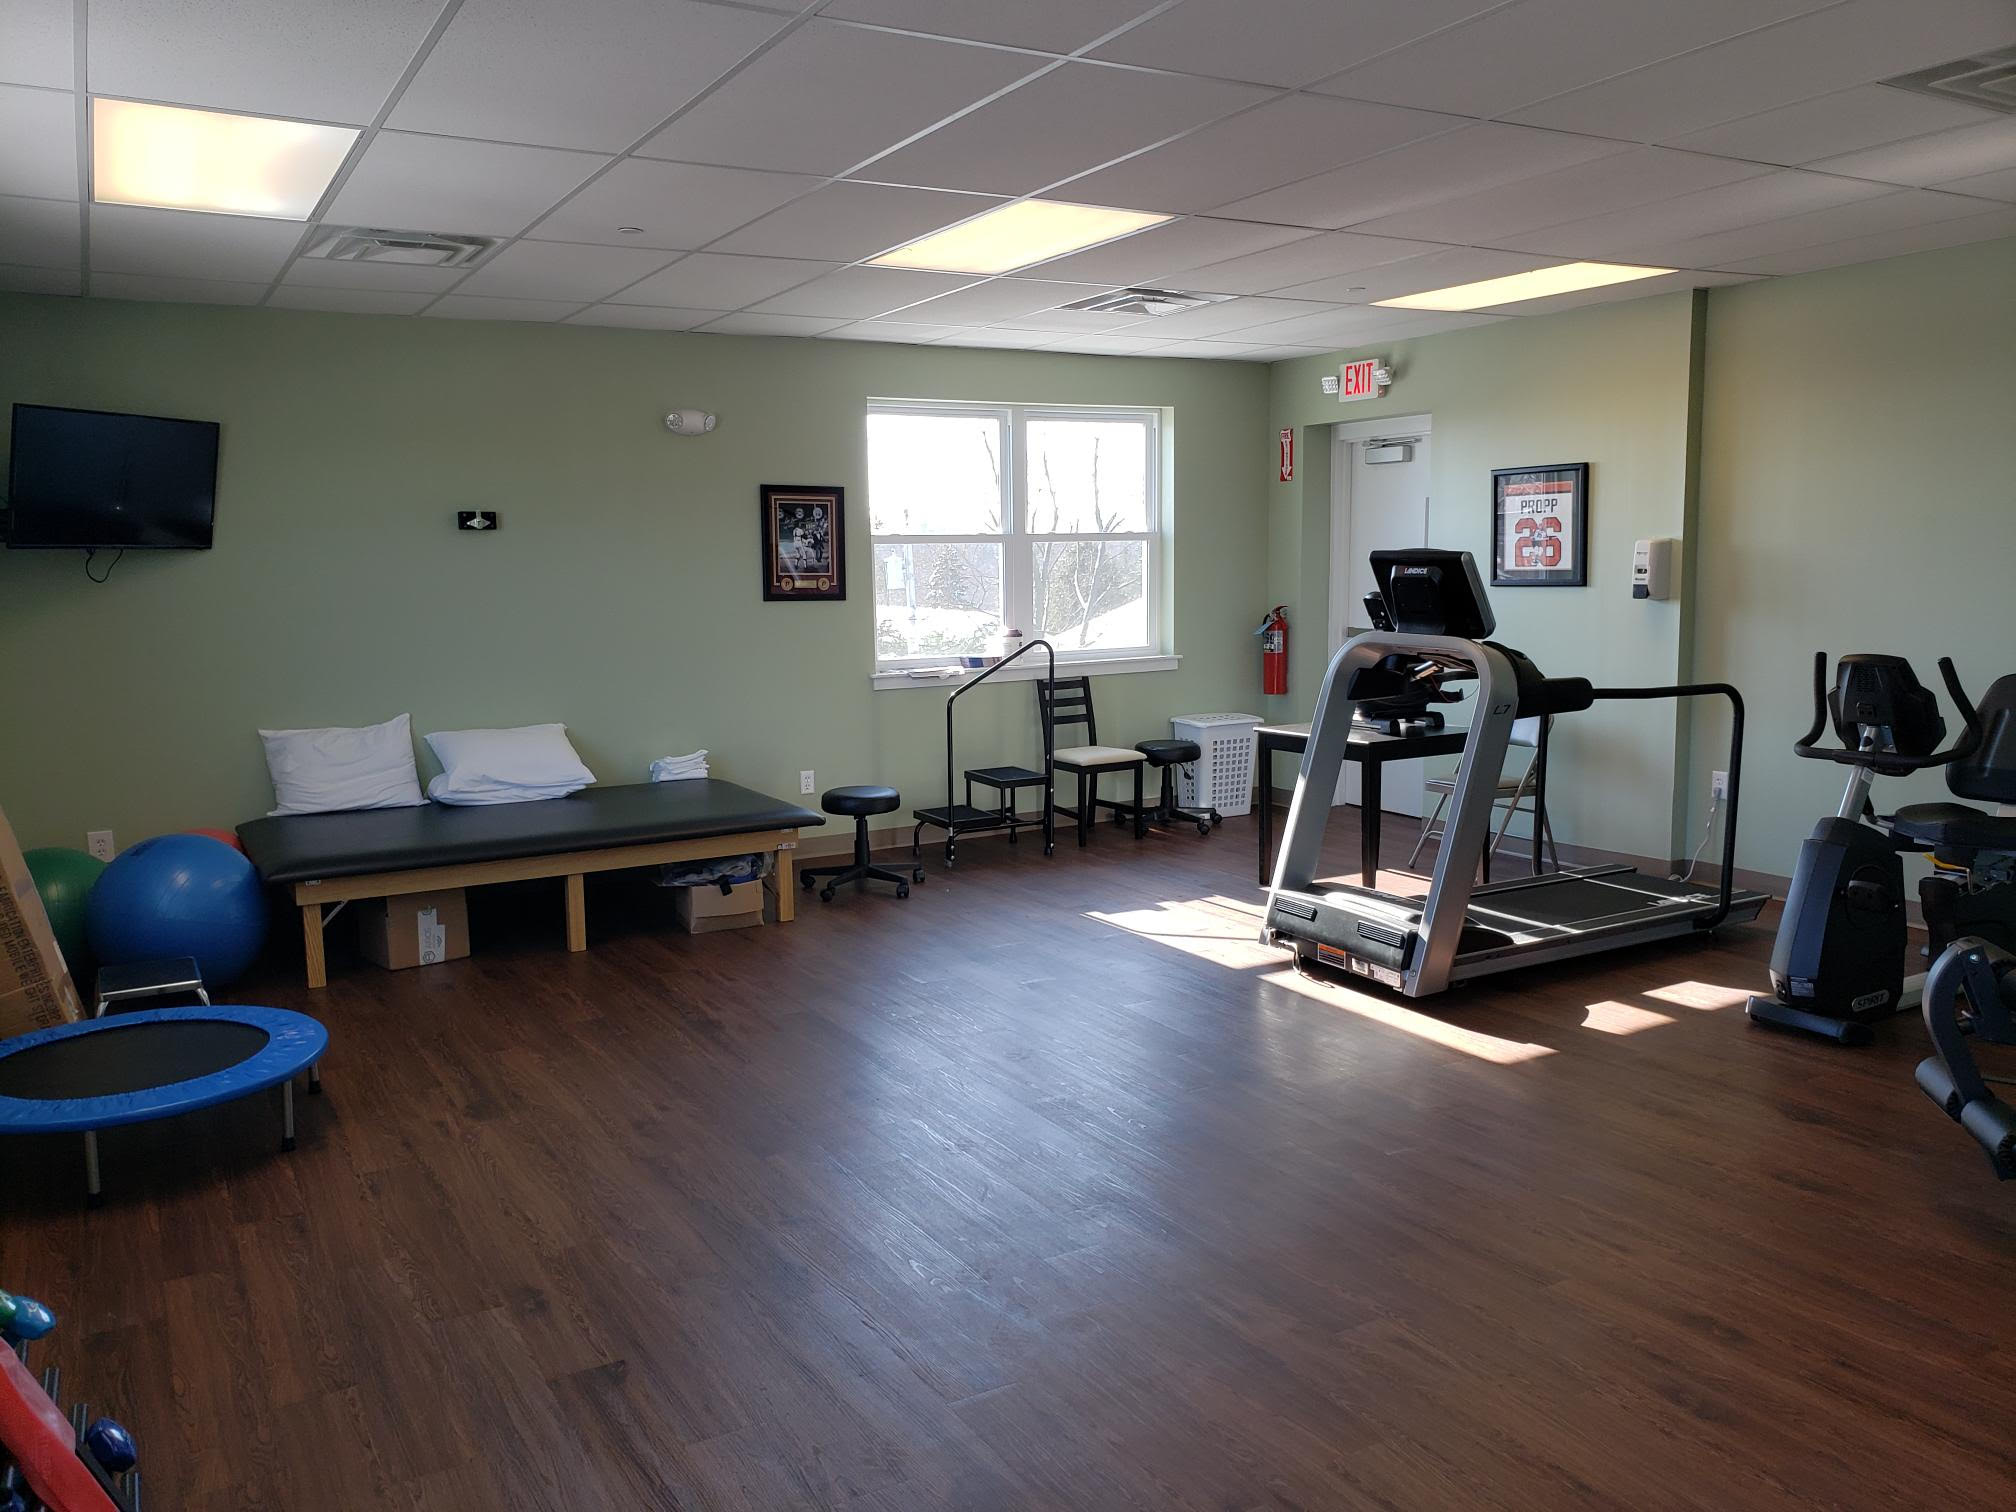 physical therapy clinic - exercise and therapeutic devices at Forward Progress Injury Care in Horsham, PA